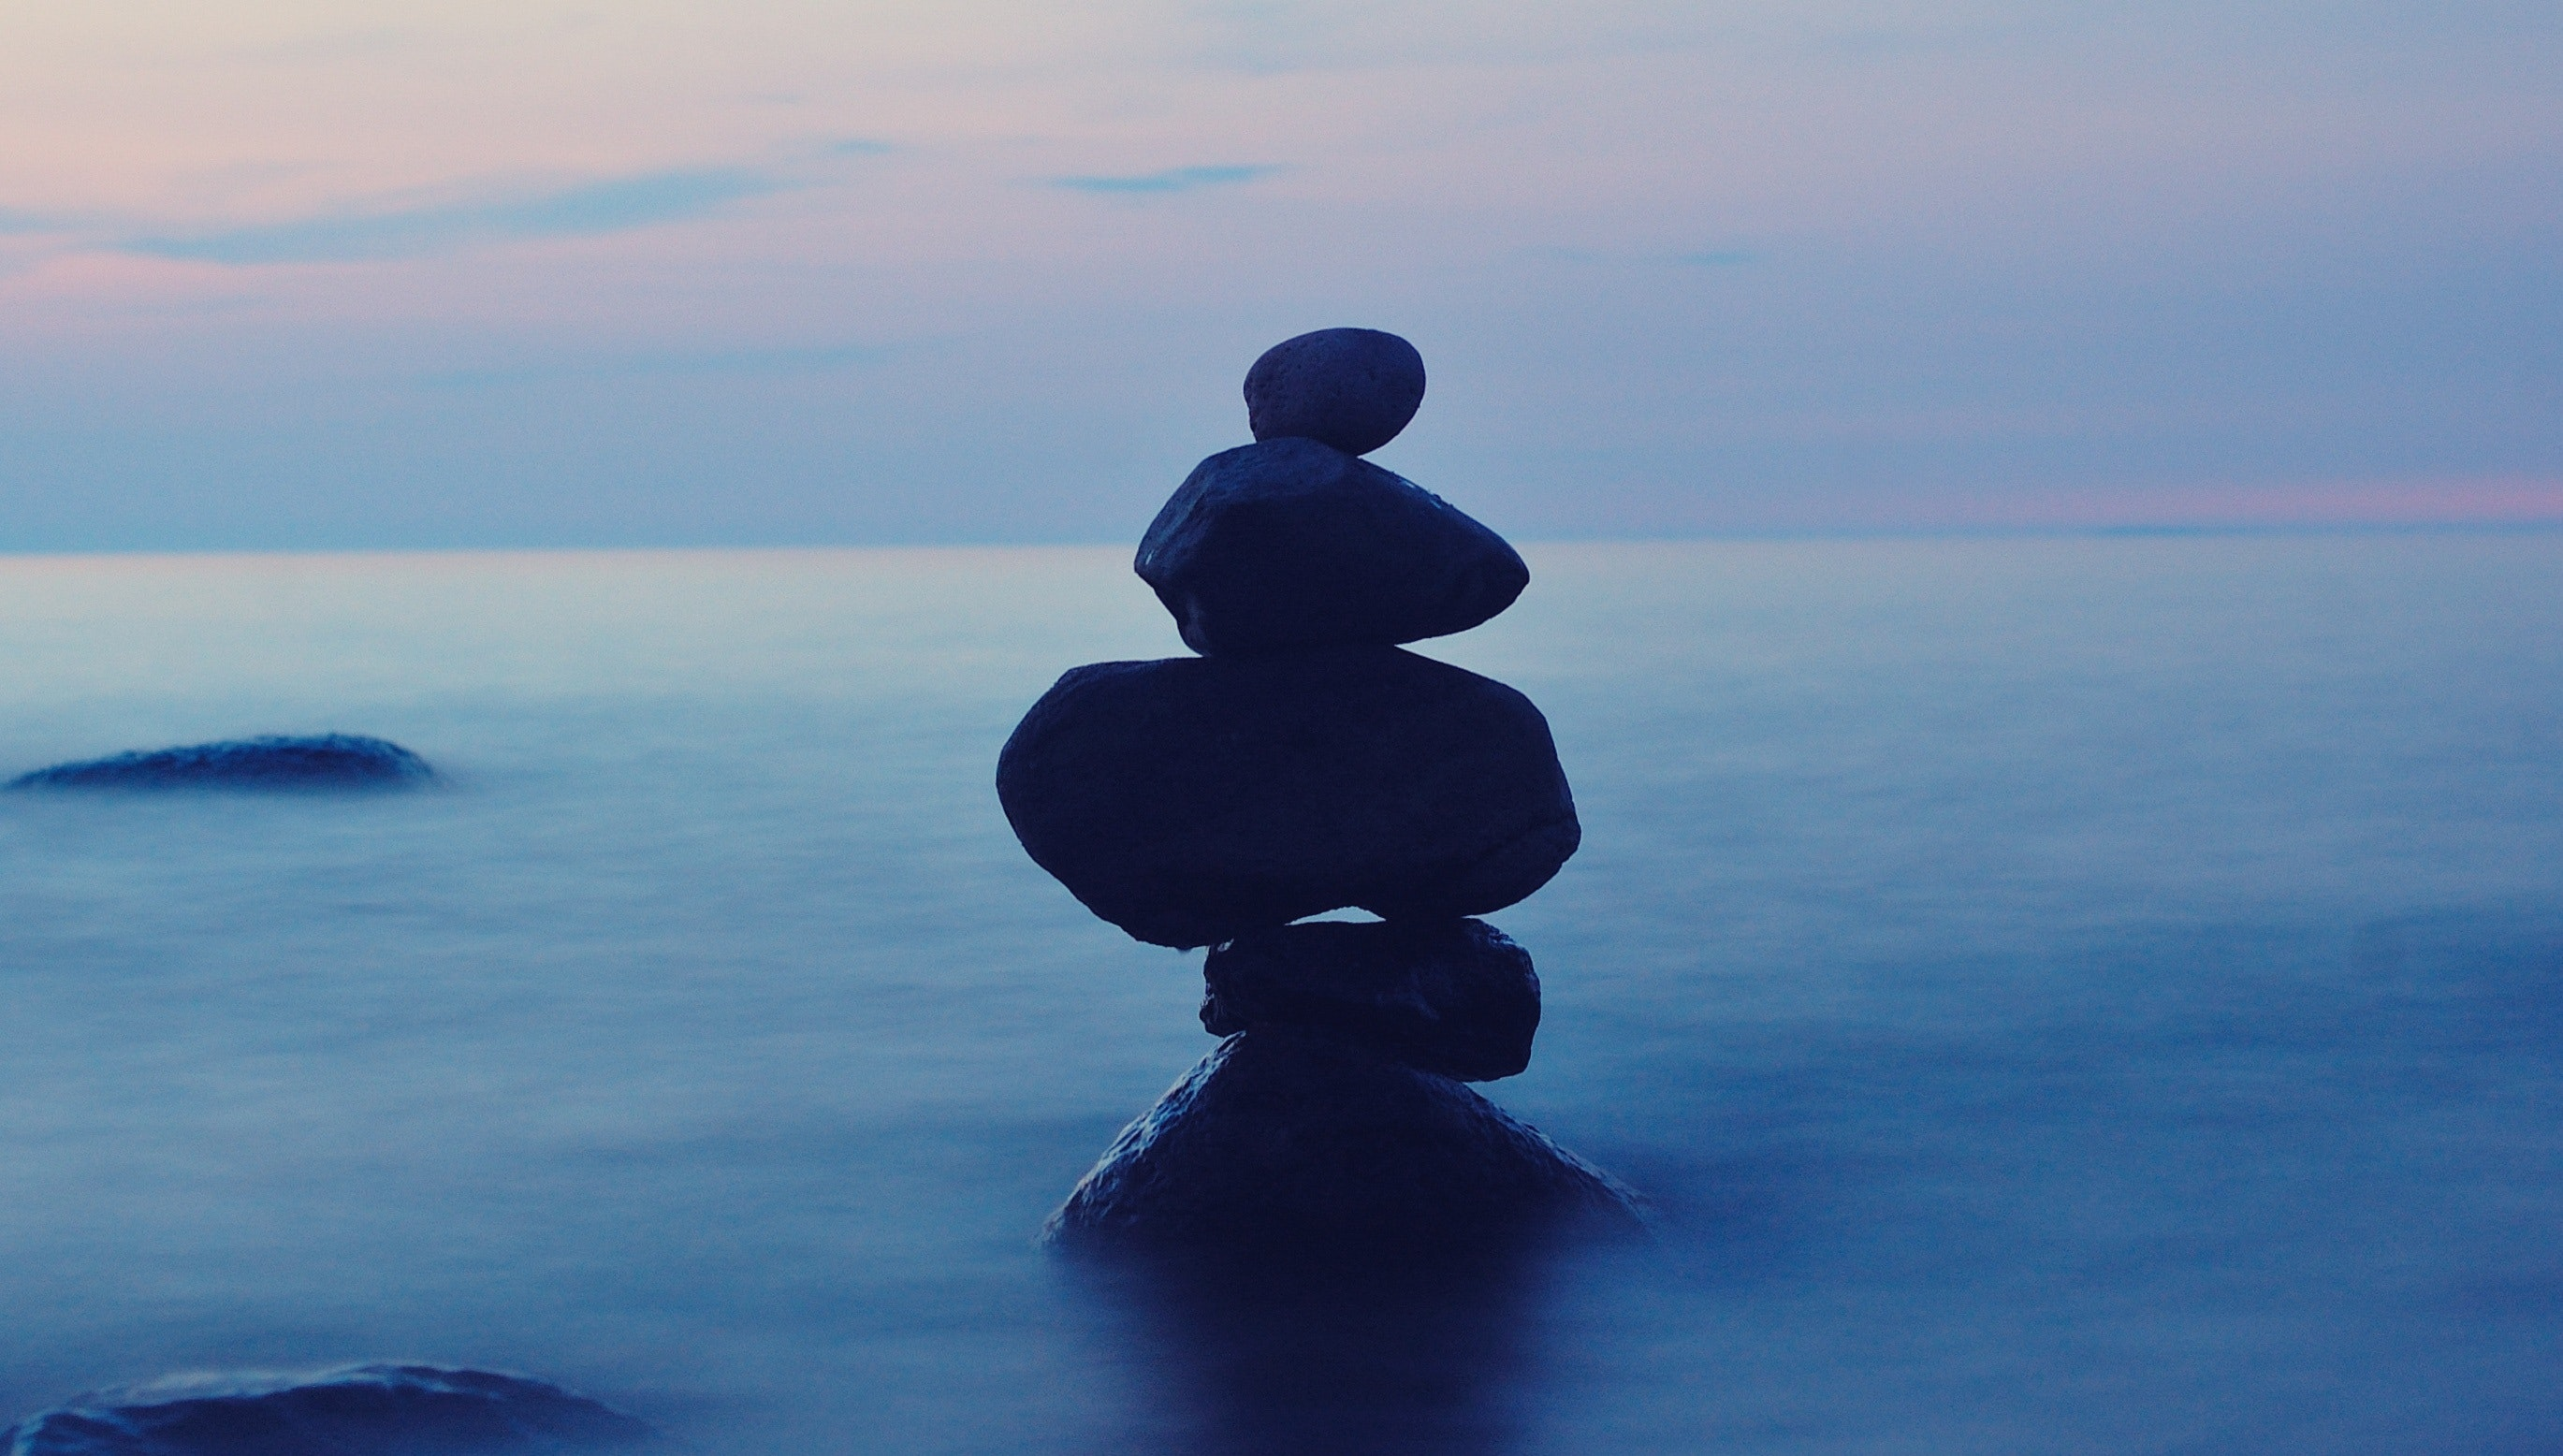 Rocks balanced on top of each other in body of water